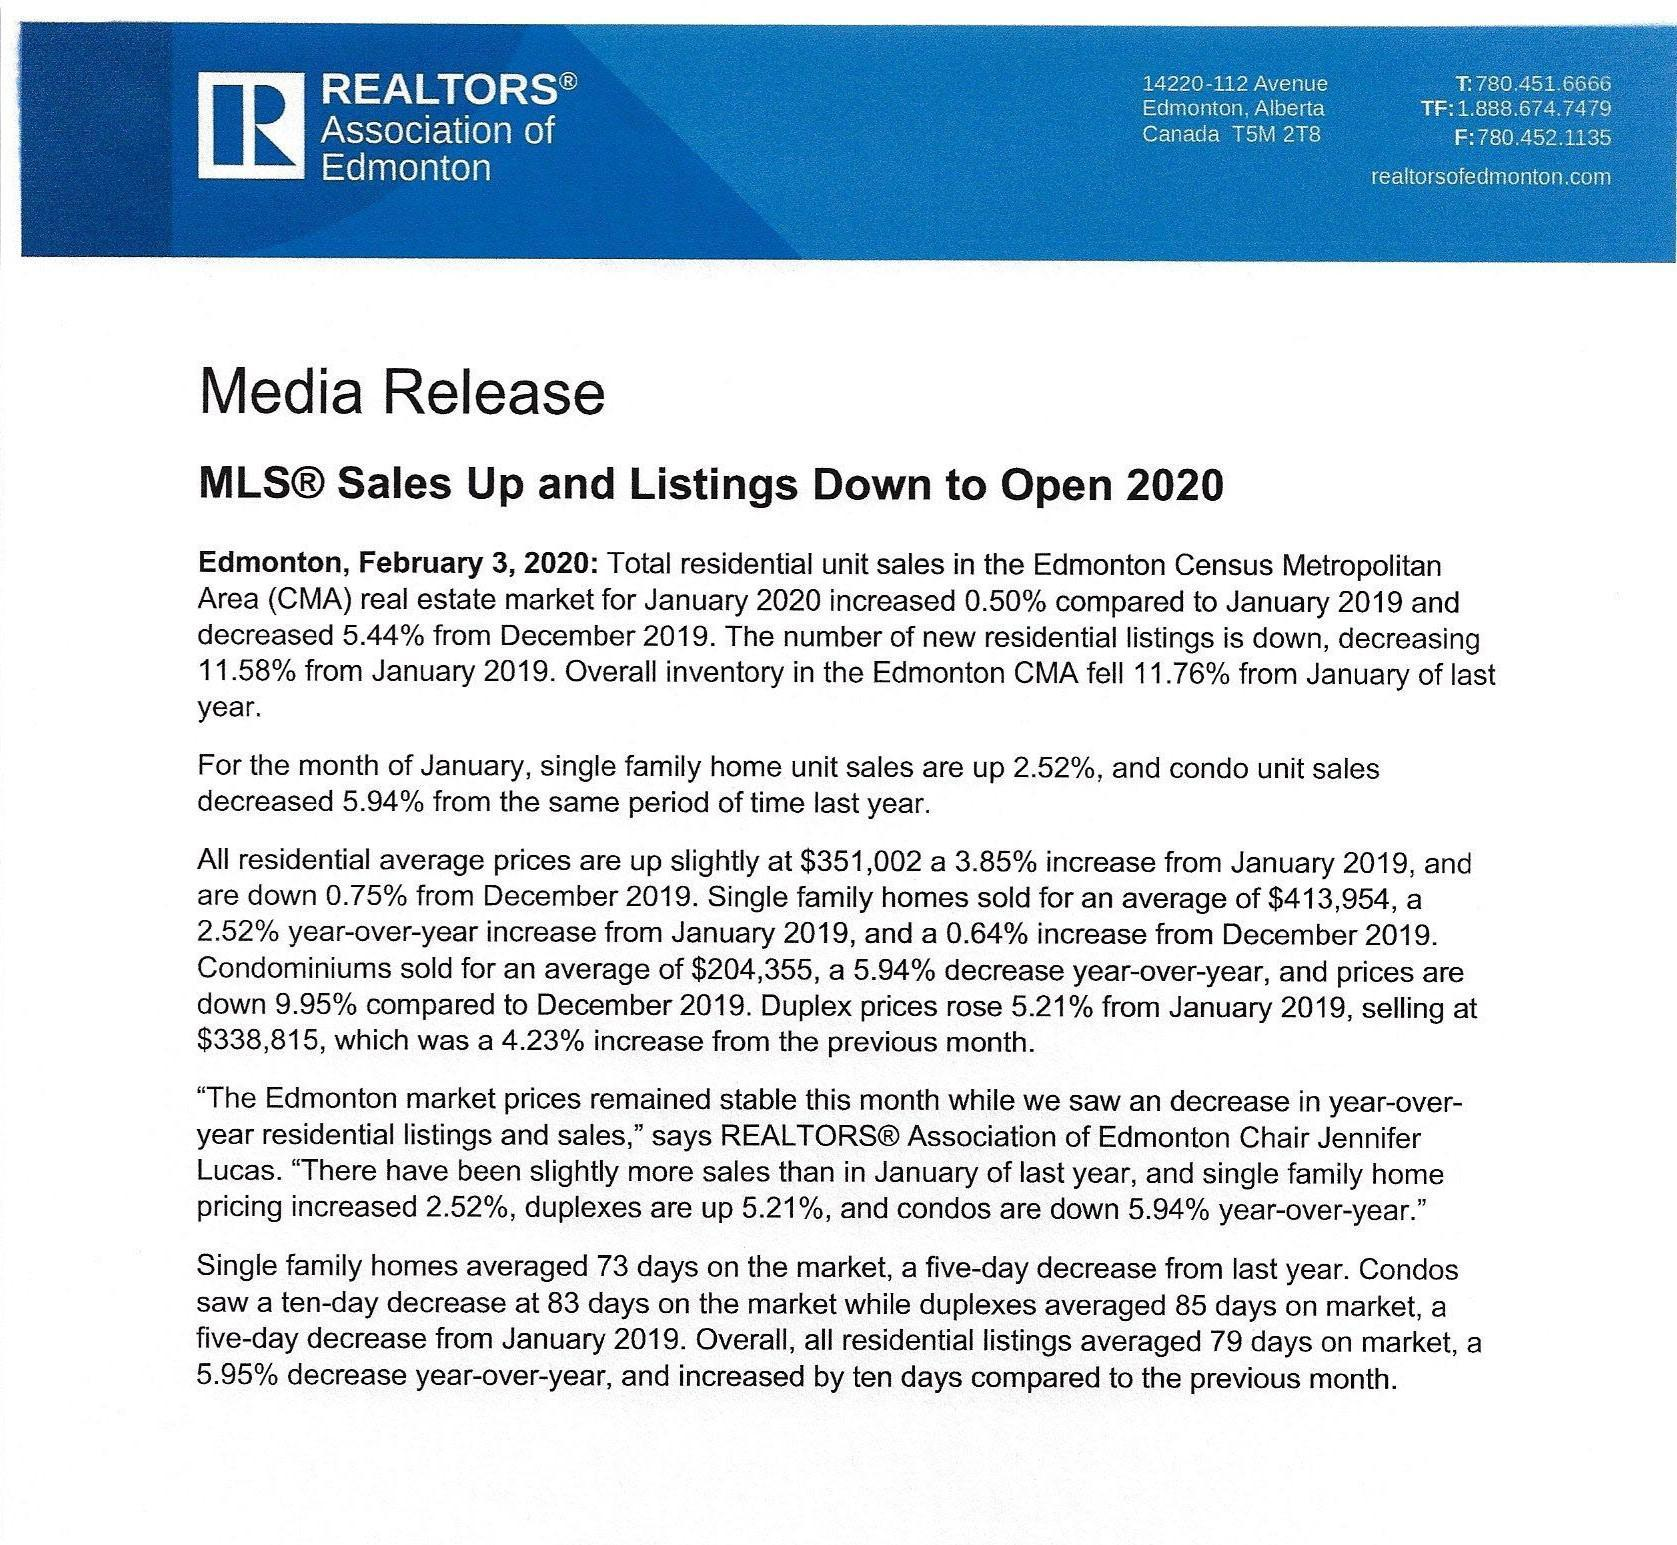 Realtors® Association of Edmonton February 3, 2020 News Release